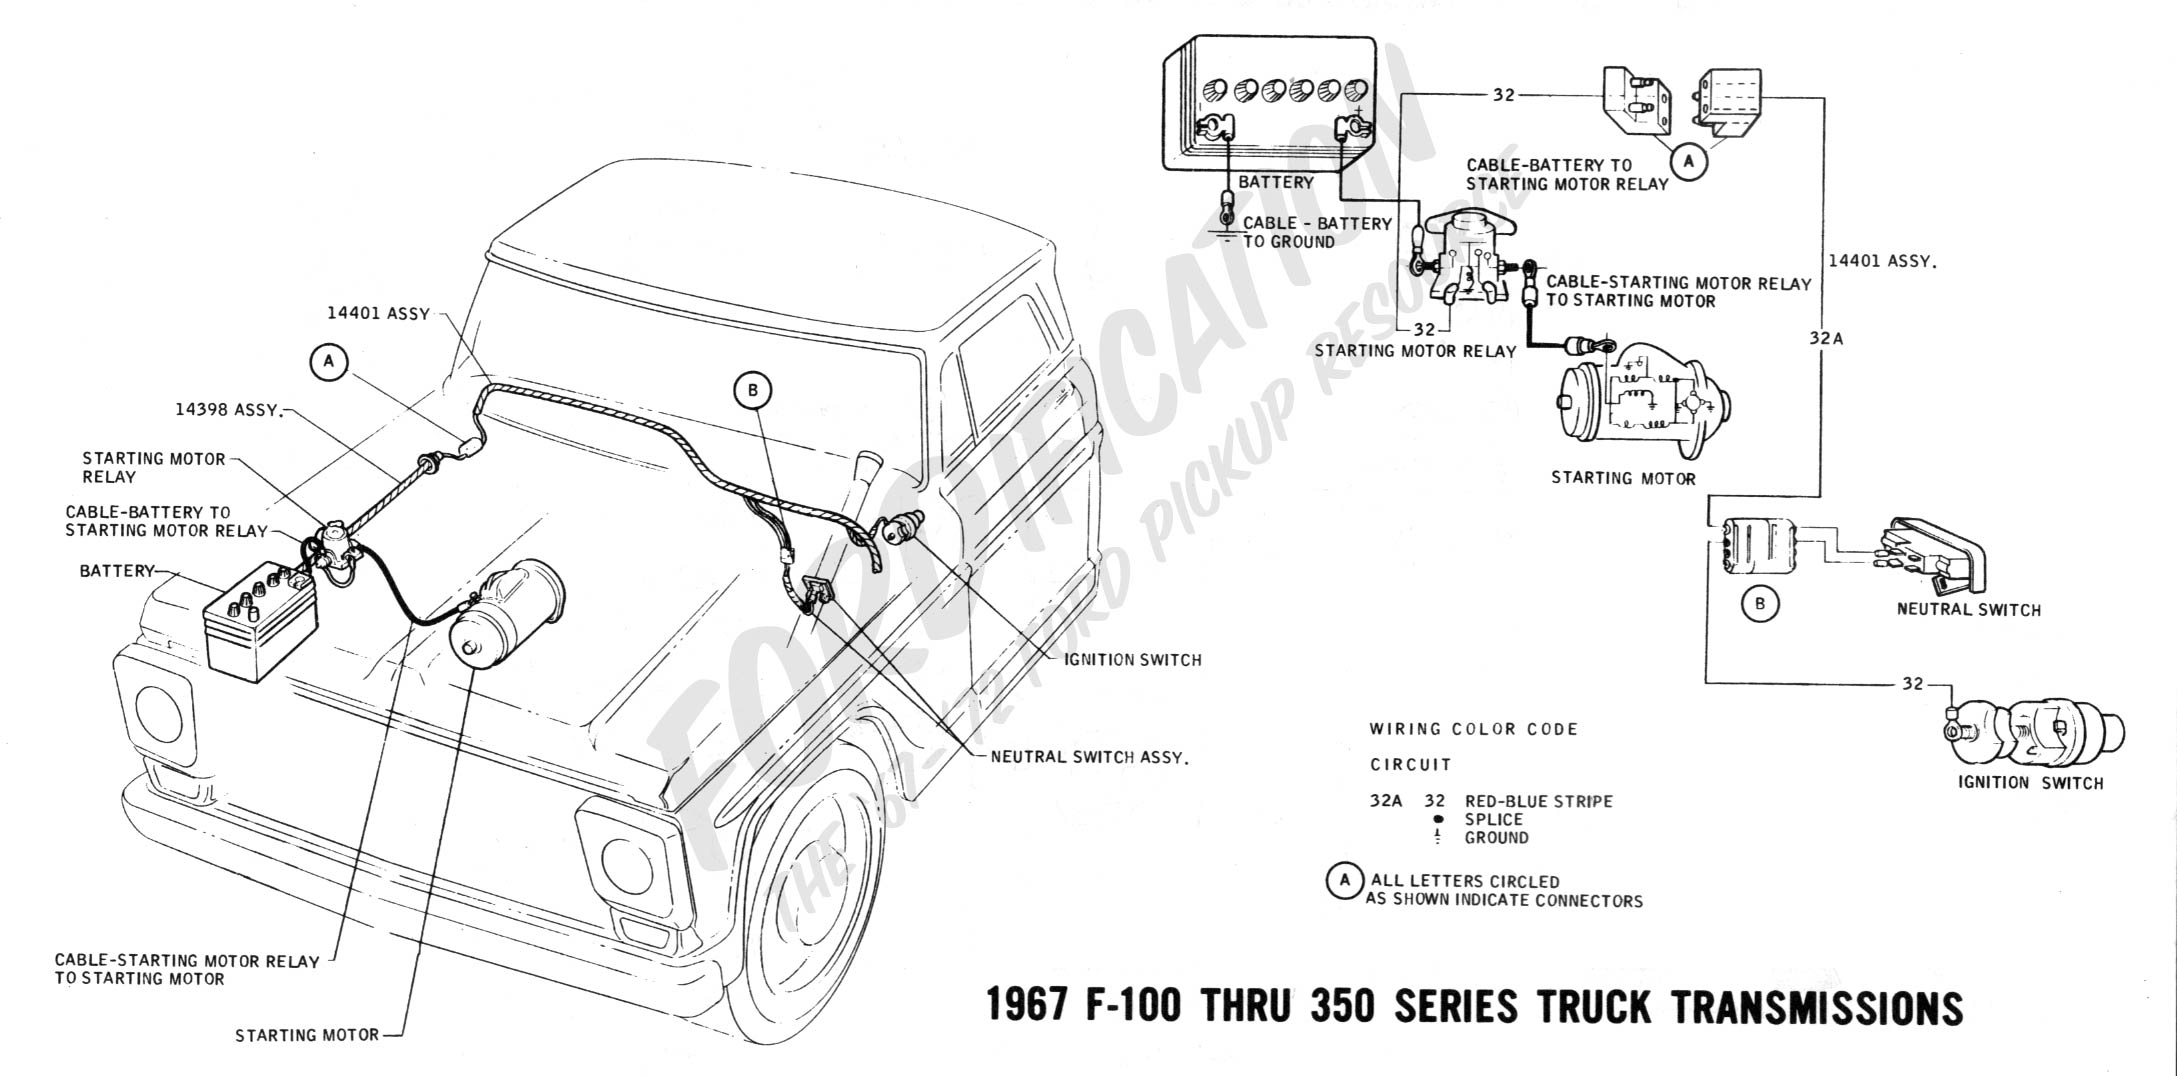 1976 ford van wiring trusted wiring diagrams rh kroud co Bronco Wiring Diagram Tail Light Bronco II Wiring Diagram